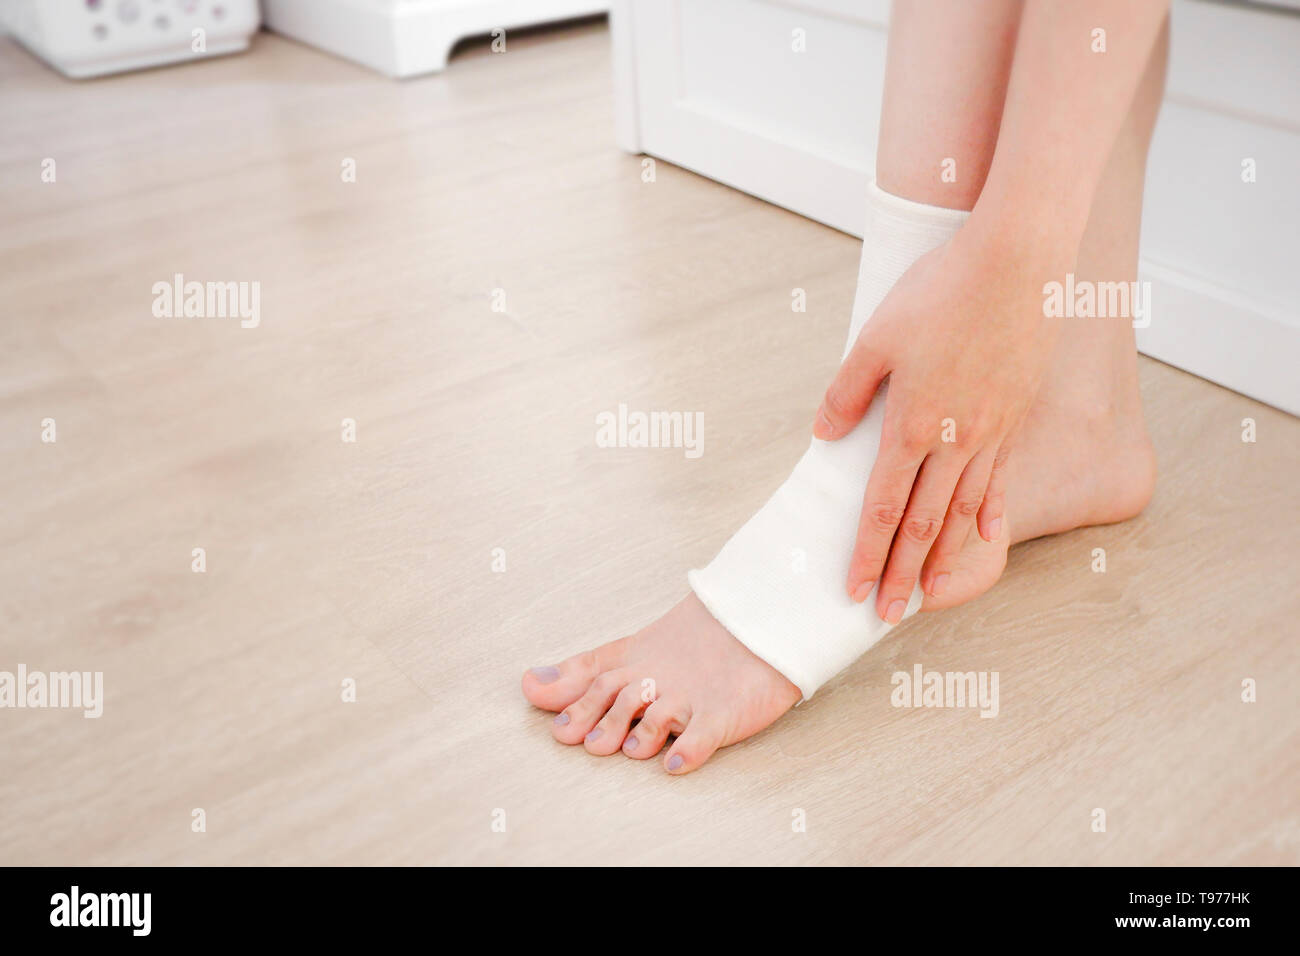 Closeup People of a Foot with White Gauze Elastic Bandage. Hands on Injured Legs and Feet on Pain Area. Asian Young Woman Ankle Injury Runner Sitting  - Stock Image